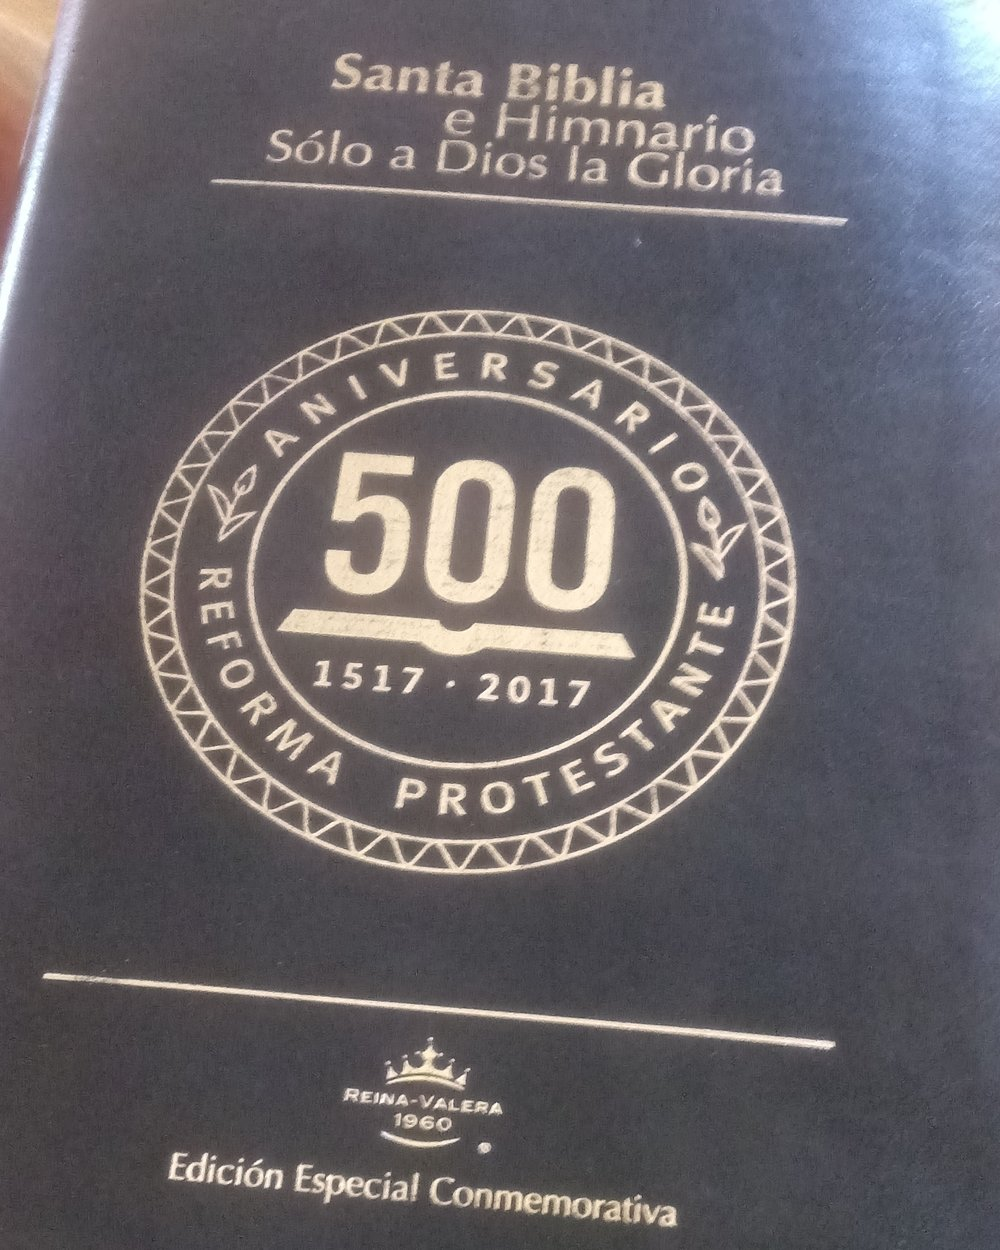 A popular edition of the Bible containing the Presbyterian hymnbook